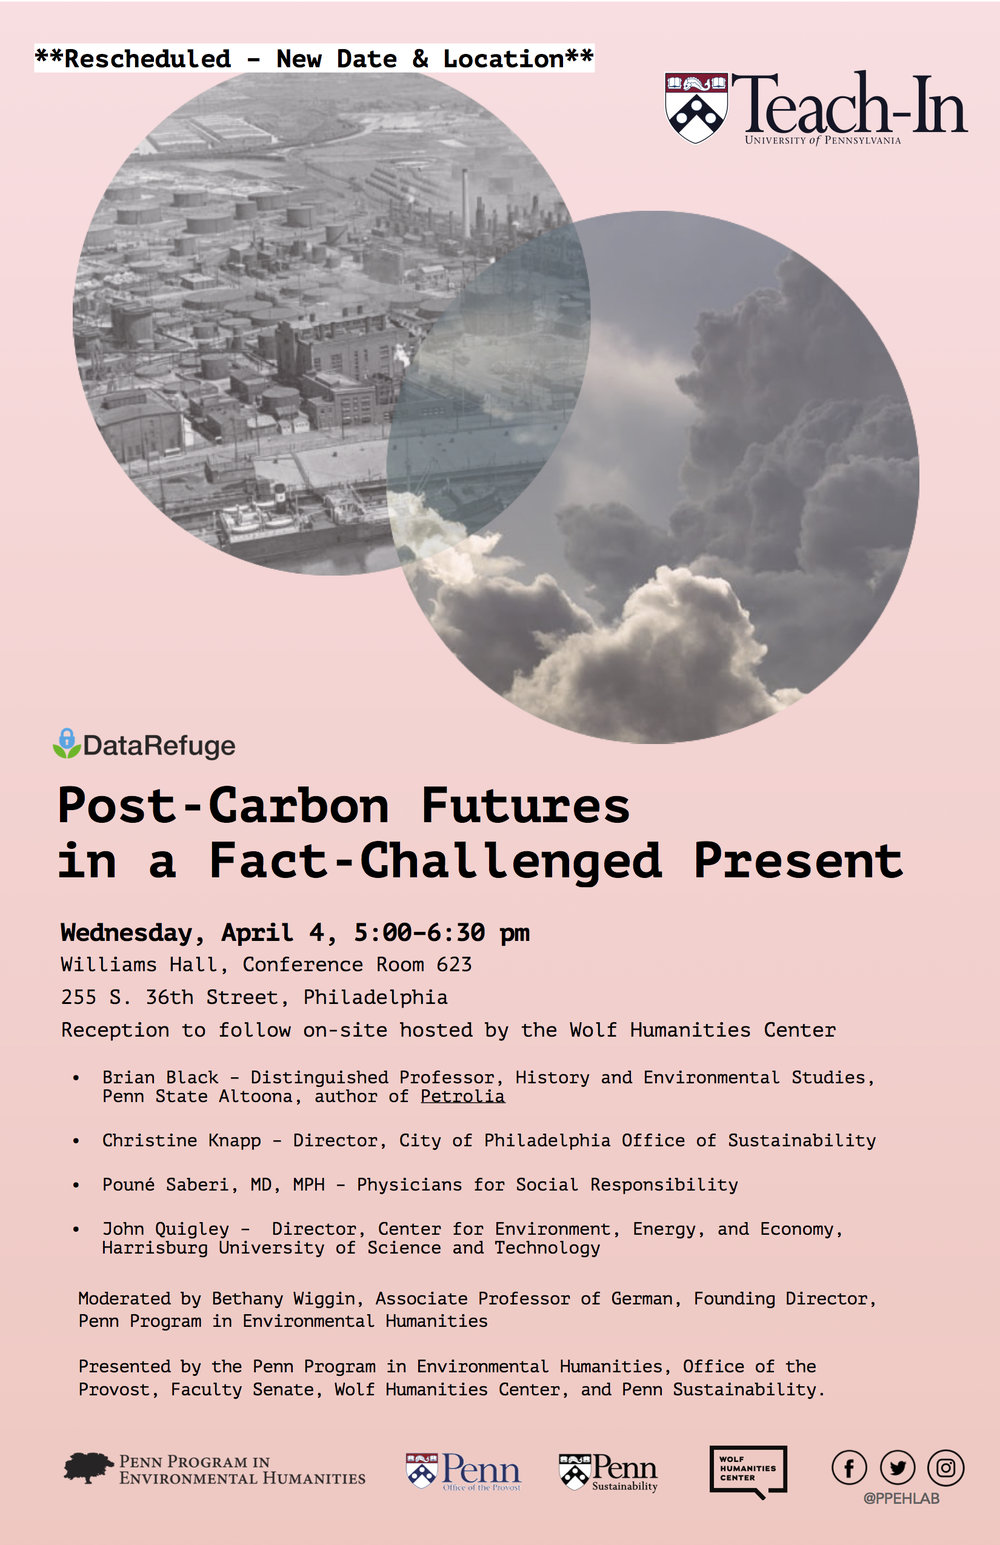 Carbon-Event-Poster-Rescheduled.jpg